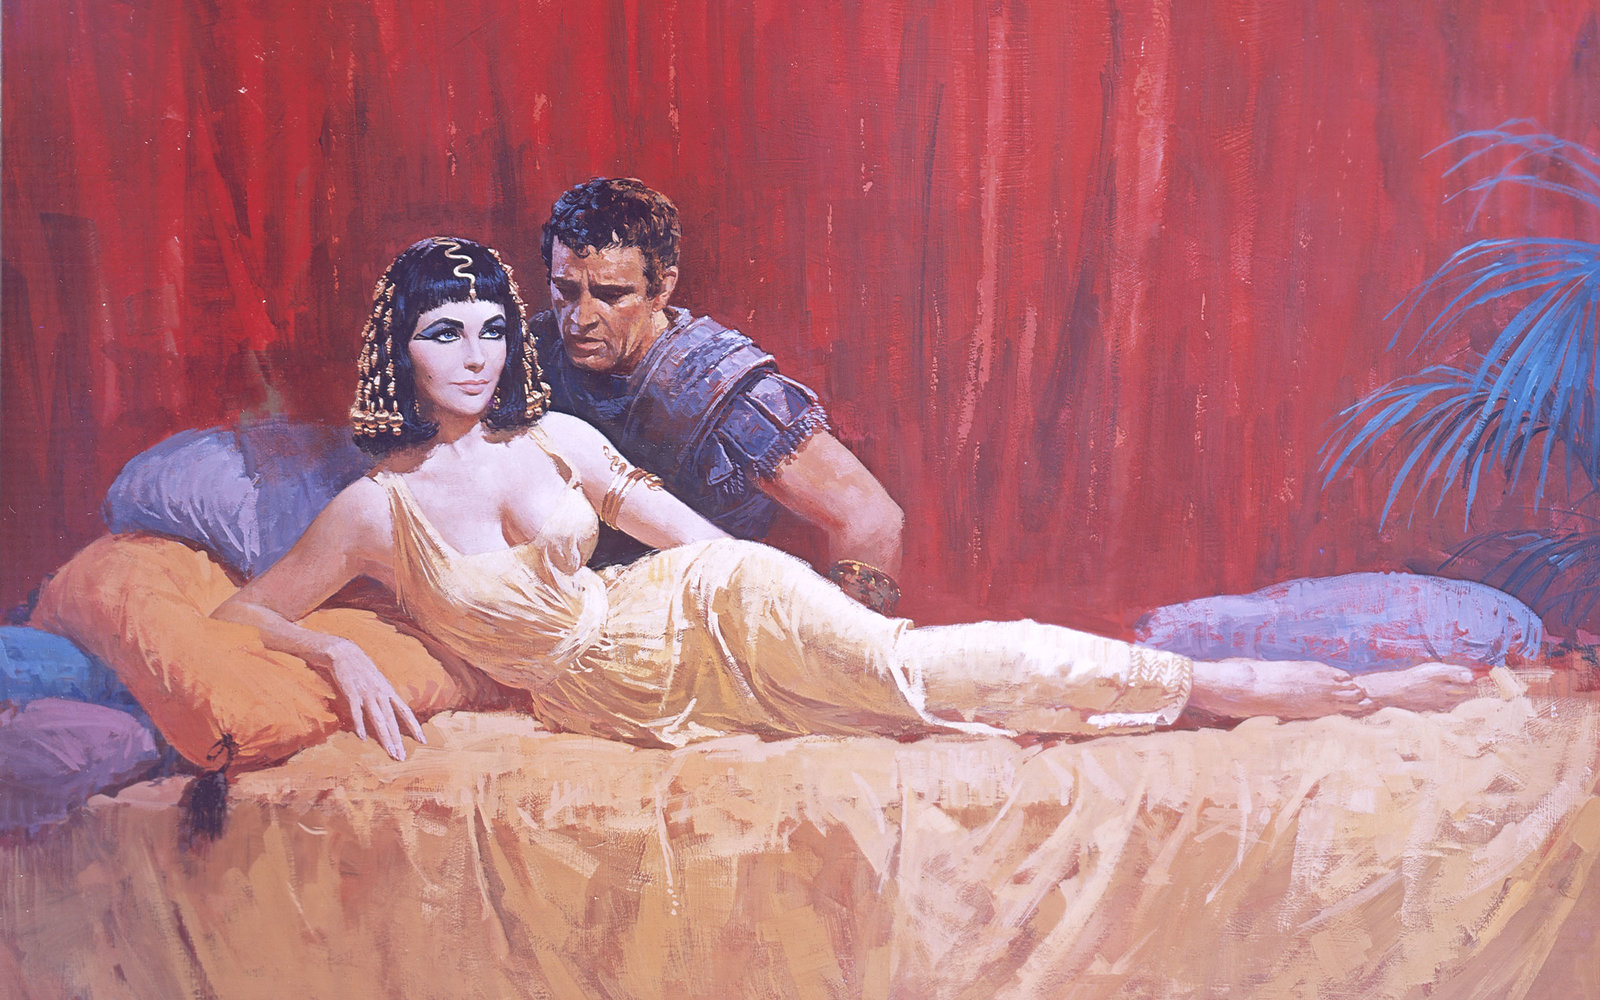 Cleopatra Had a Secret Drinking Club